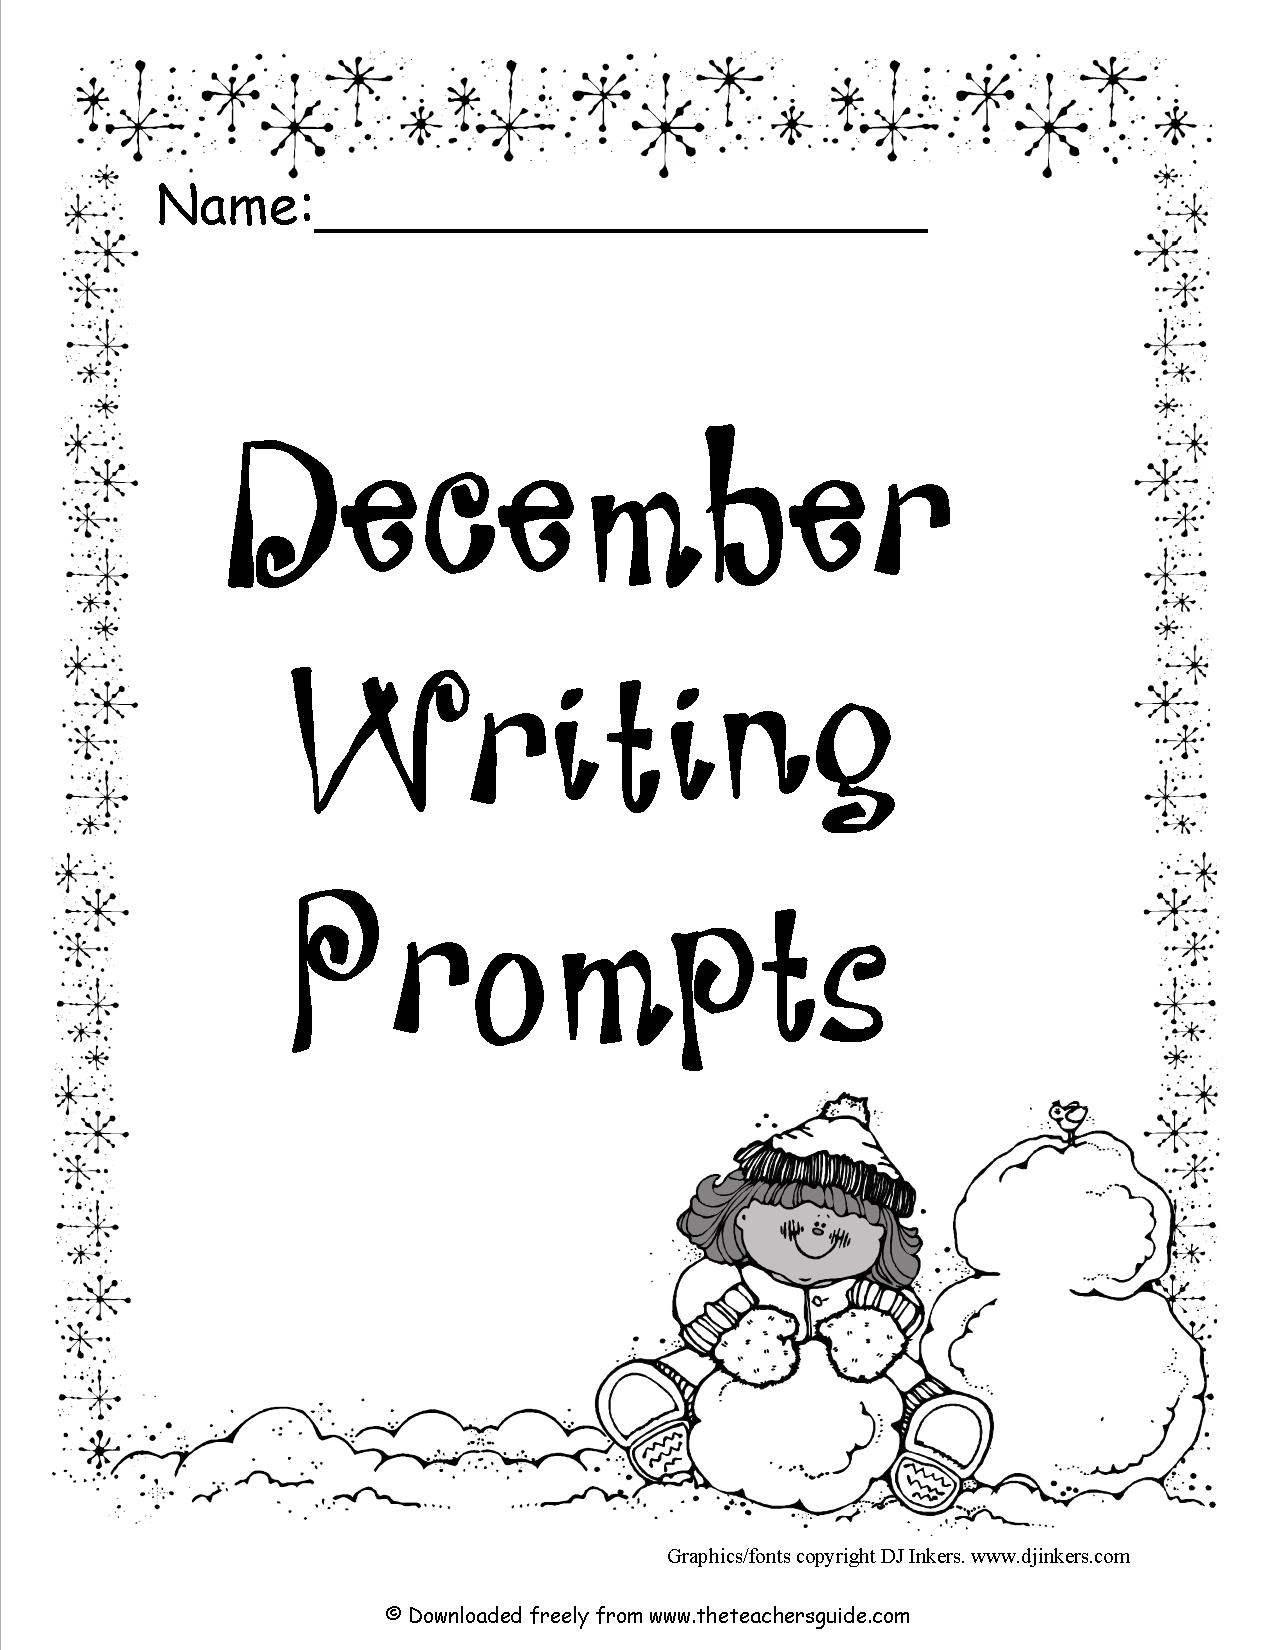 12 Best Images of Fun Christmas Worksheets For Elementary